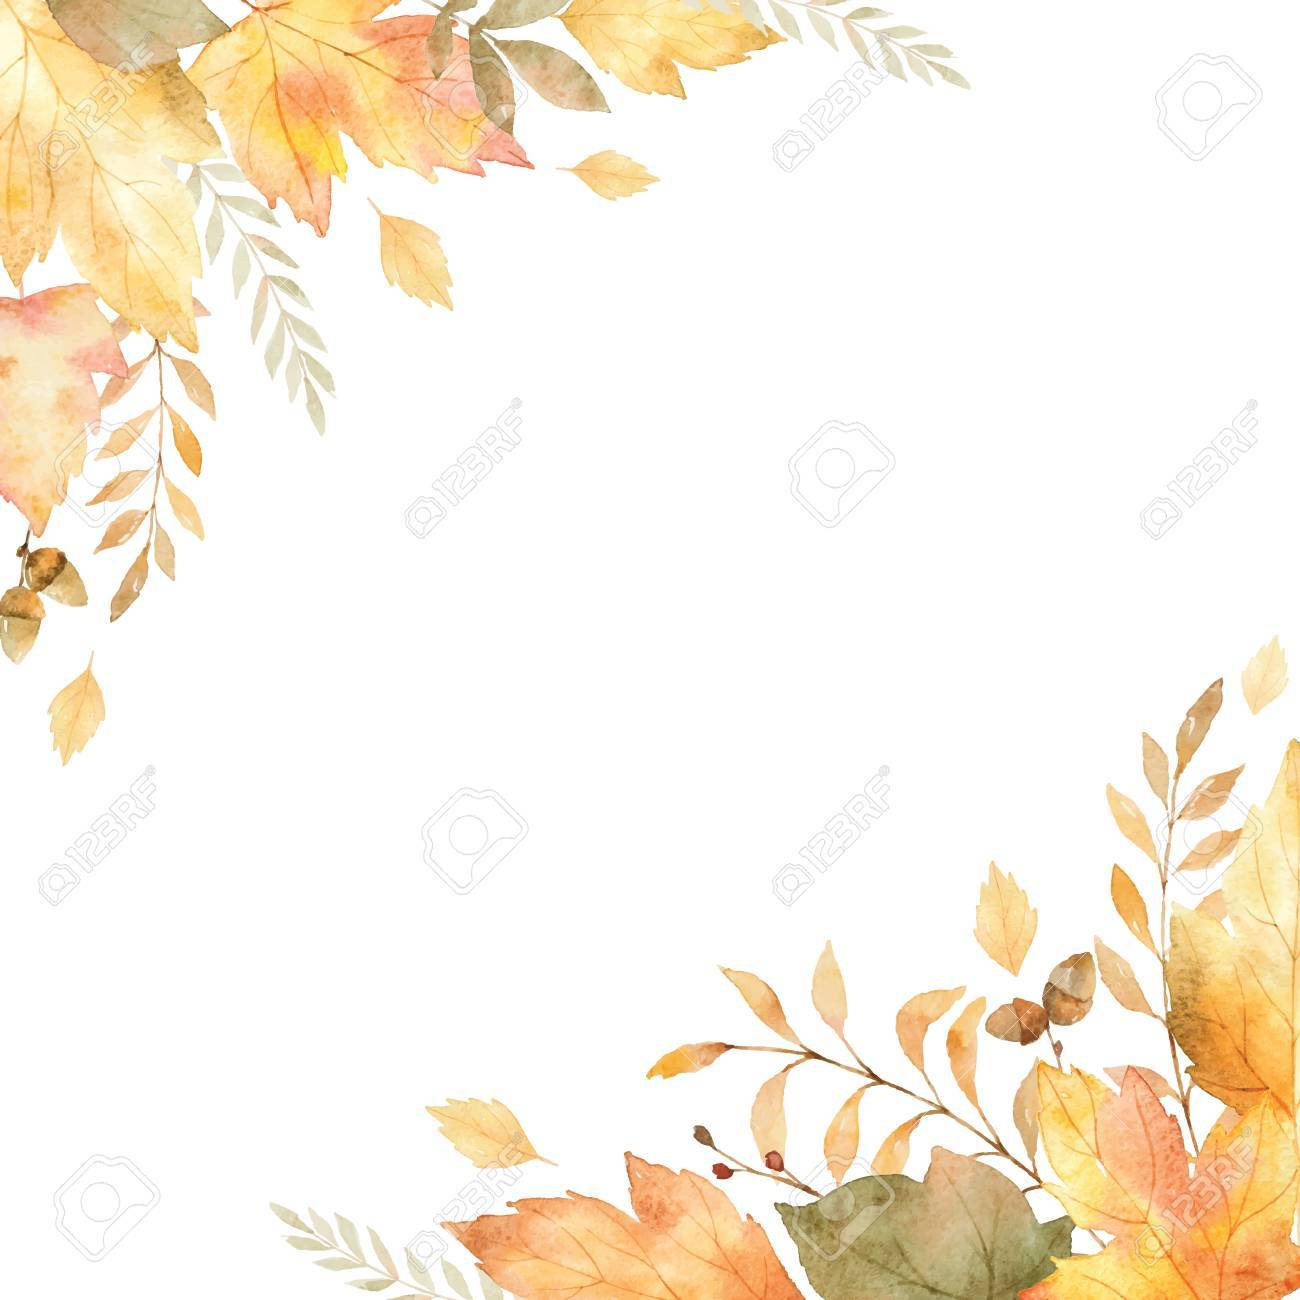 Watercolor vector frame of leaves and branches isolated on white background. - 85132442